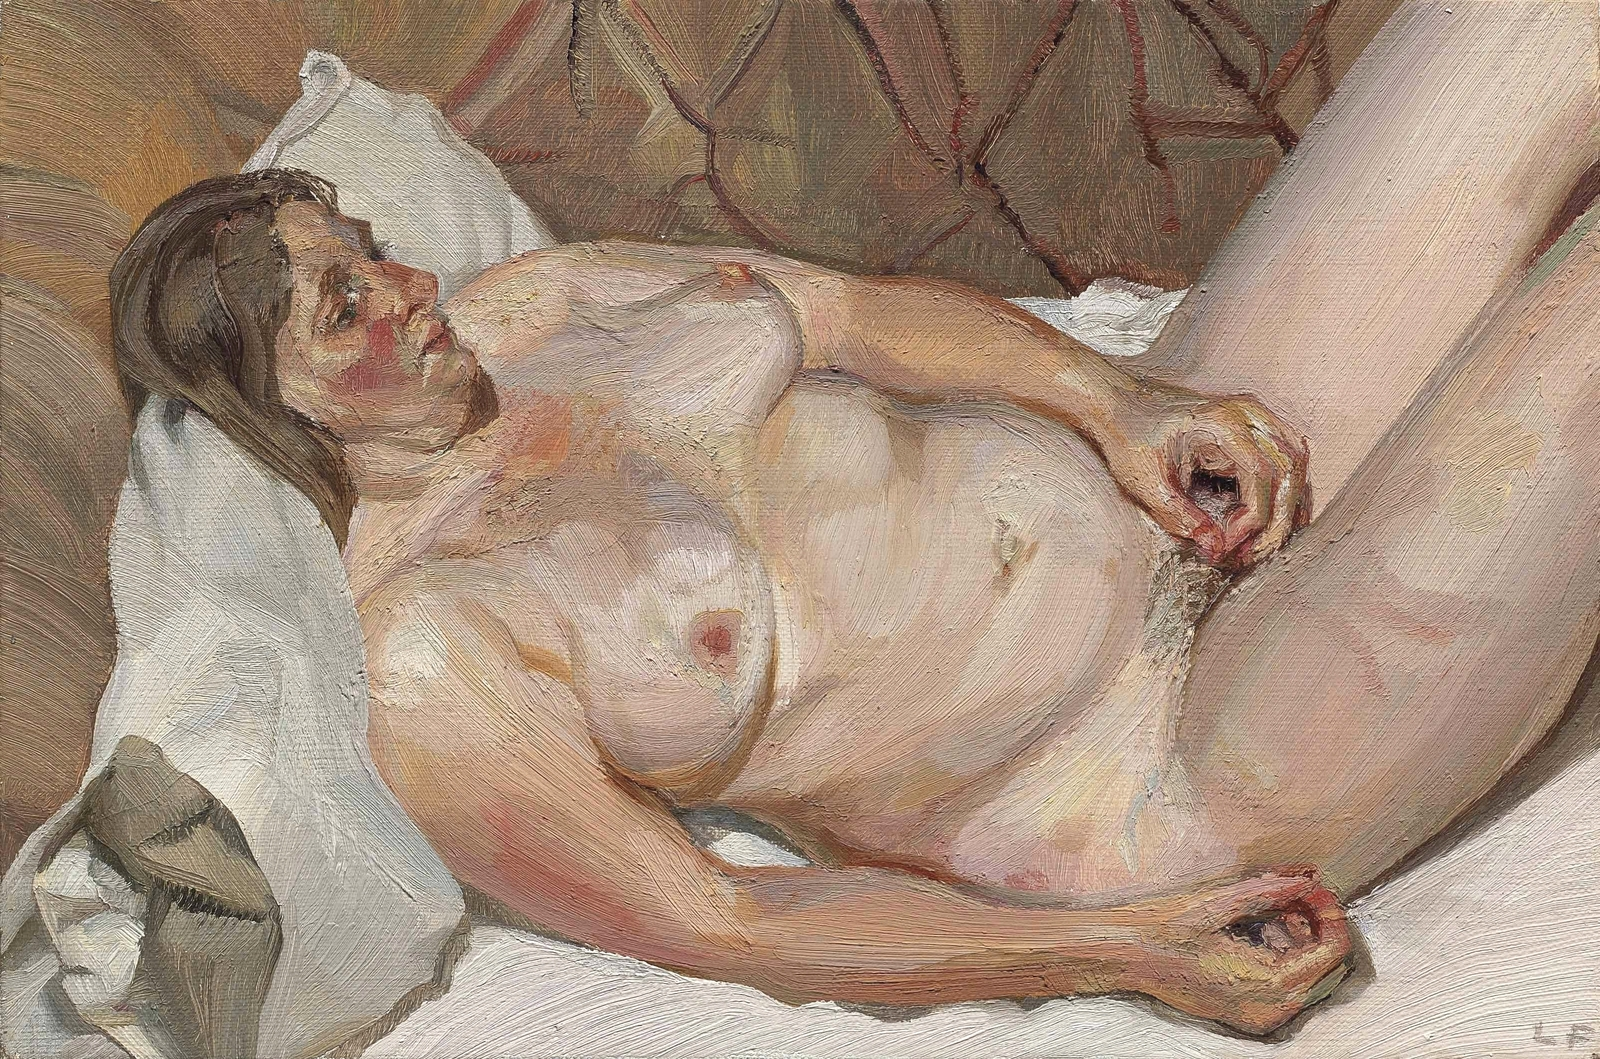 Can Lucian freud naked portrait are